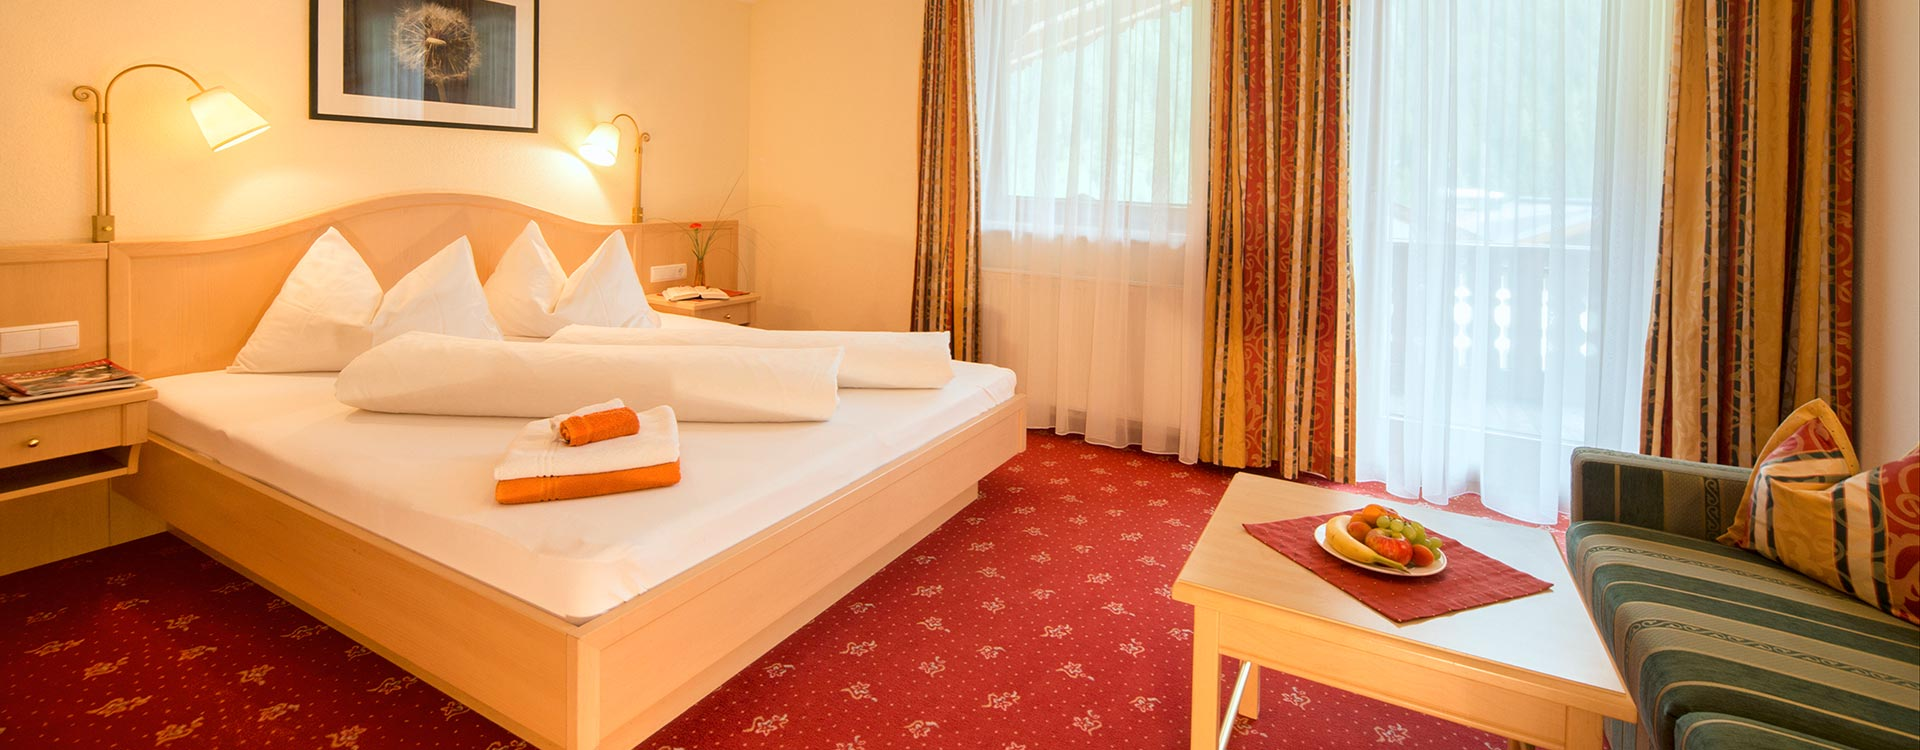 Double Room Granat